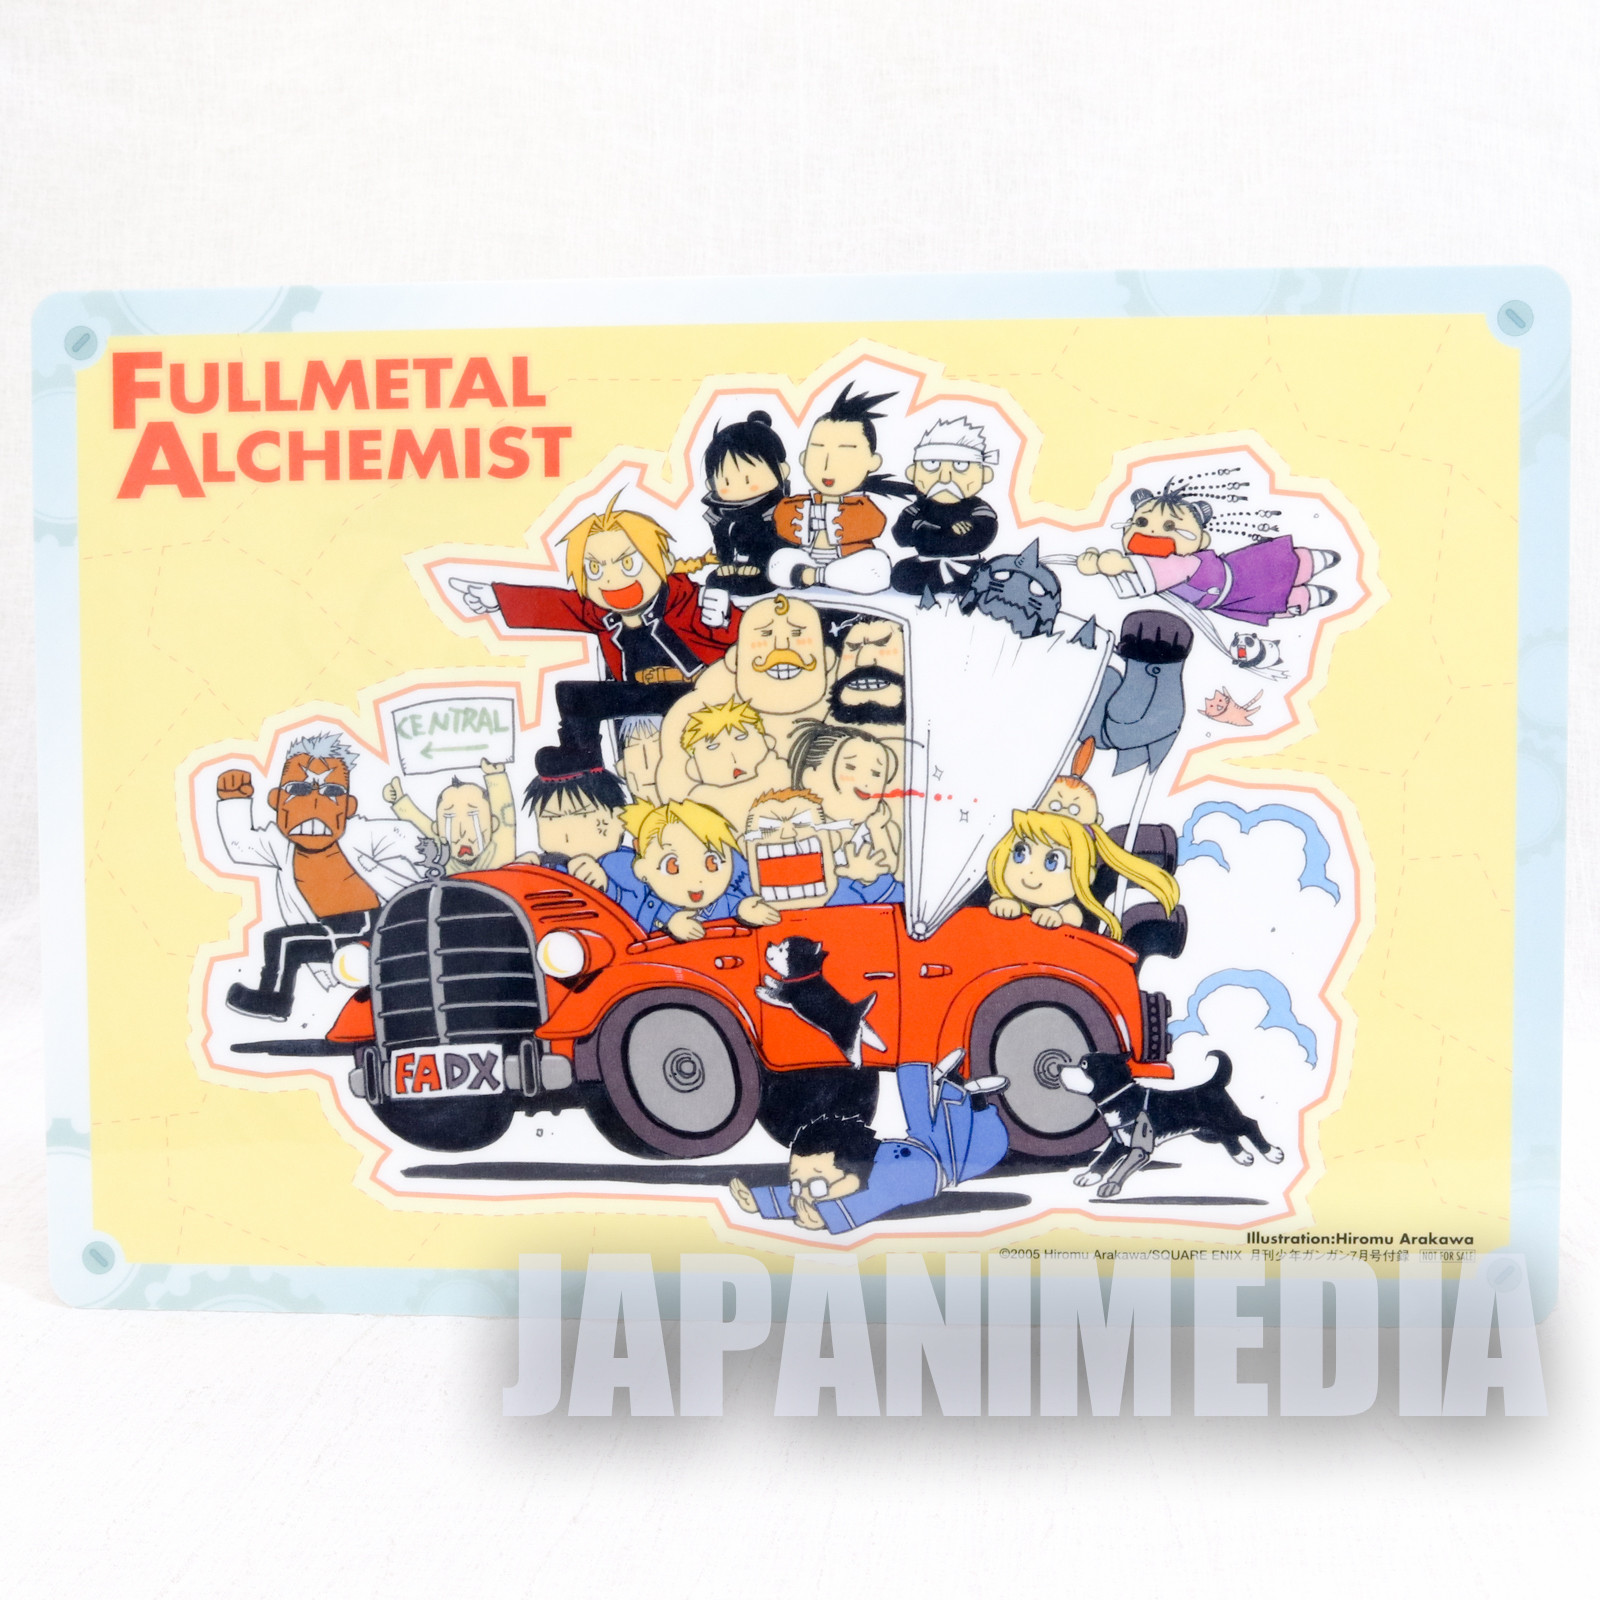 FullMetal Alchemist Plastic Pencil Board Pad Shitajiki  Girl's & Edward's side character JAPAN ANIME